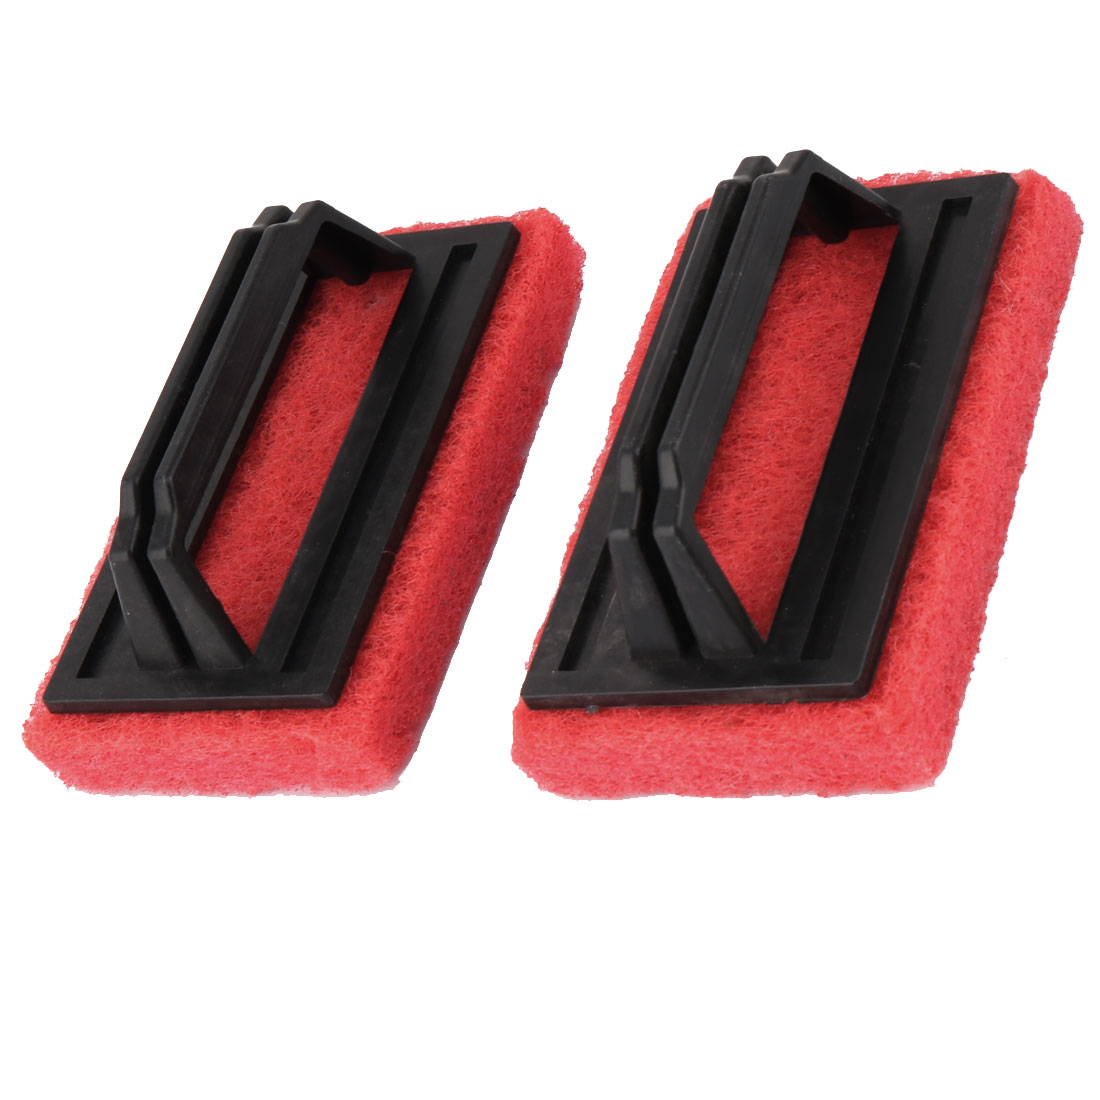 Kitchen Bathtub Plastic Handle Sponge Pad Washing Cleaning Brush Tool Black Red 2pcs